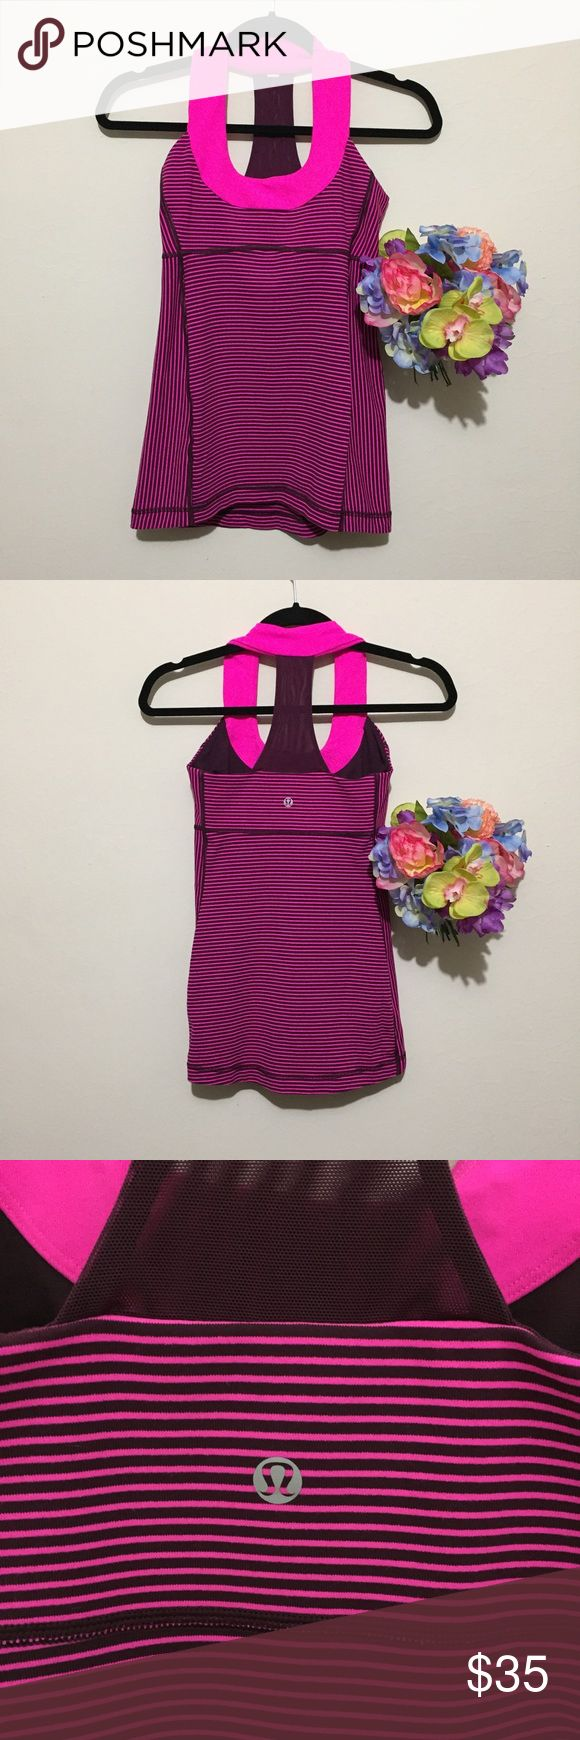 Lululemon Scoop Neck Mesh T Hot Pink Stripe Tank Universally flattering this racerback athletic tank is fun with thin bright pink and maroon stripes and a bright pink circle neckline! No size dot but see measurements for fit! Pit to pit: 13.5 in Length, shoulder to hem: 22.5 in lululemon athletica Tops Tank Tops